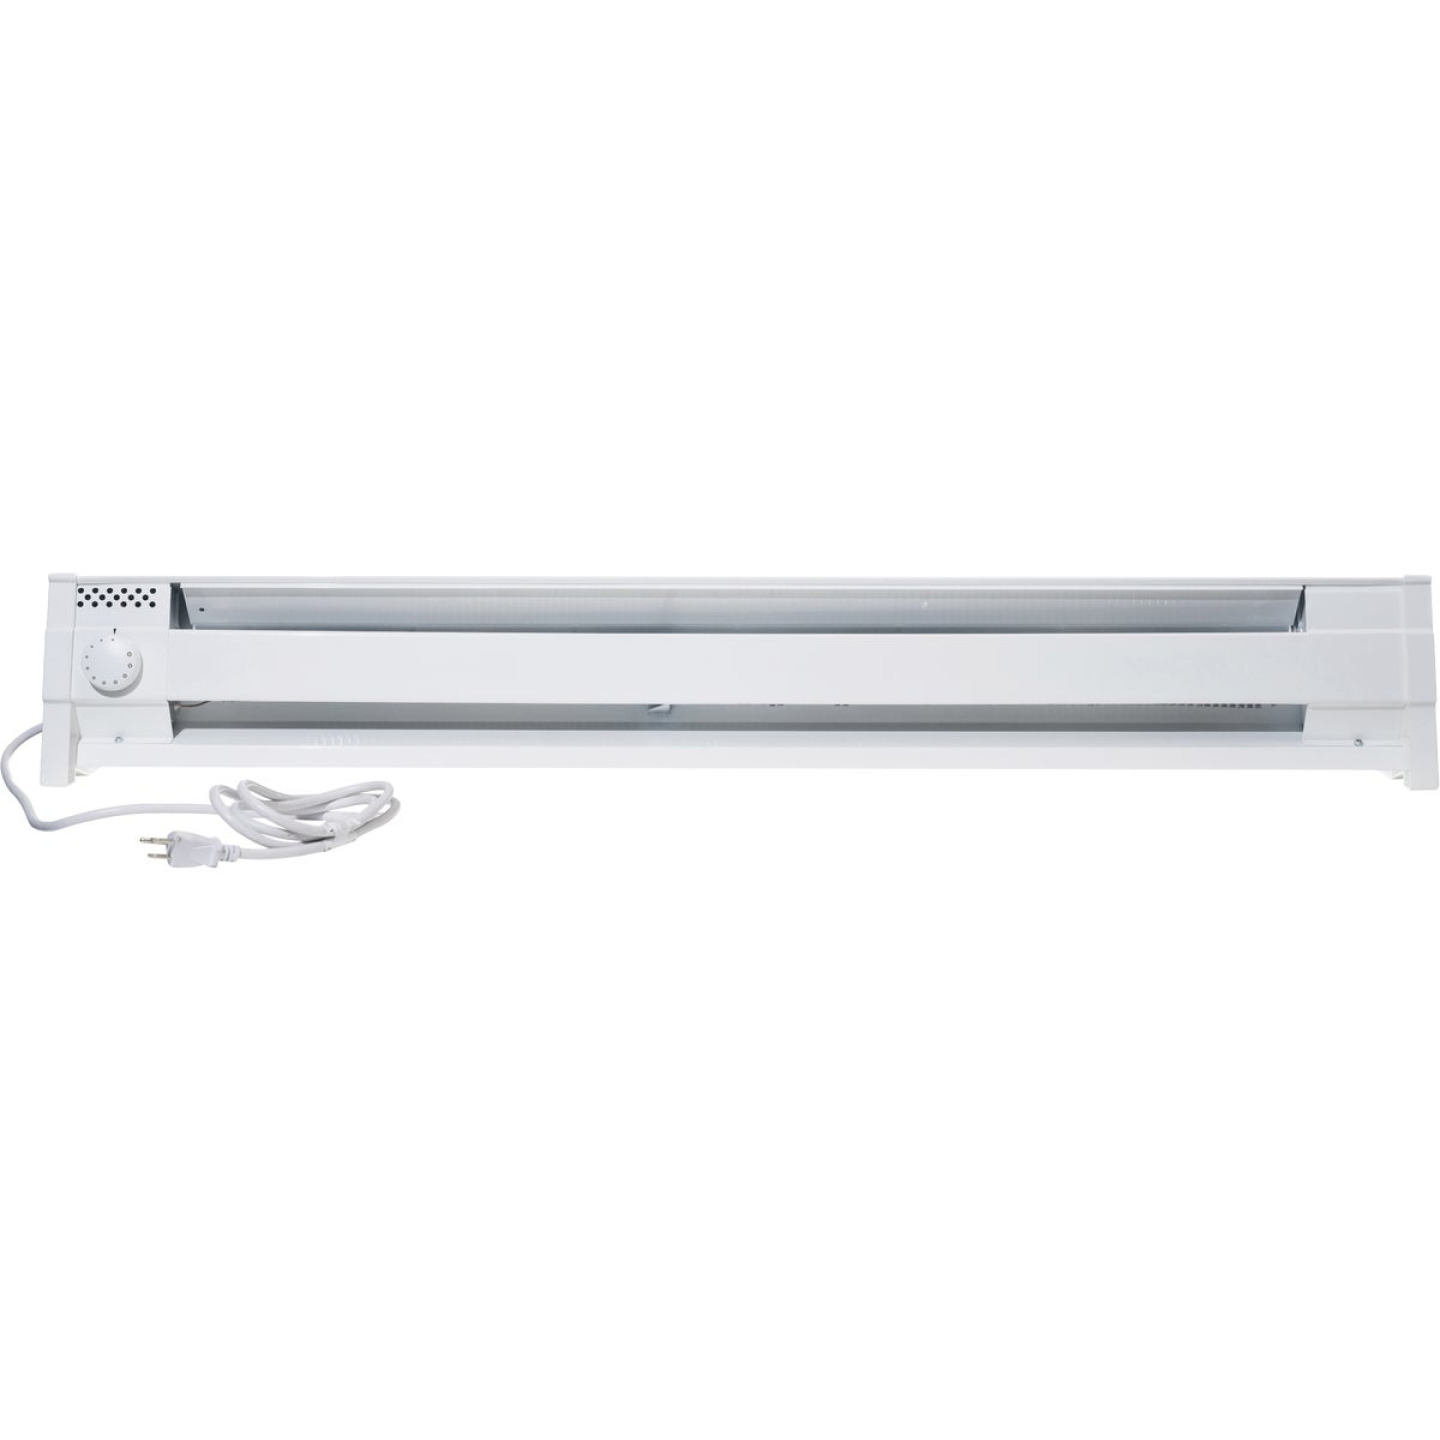 Cadet 49 In. 1500-Watt 120-Volt Portable Electric Baseboard Heater, White Image 1